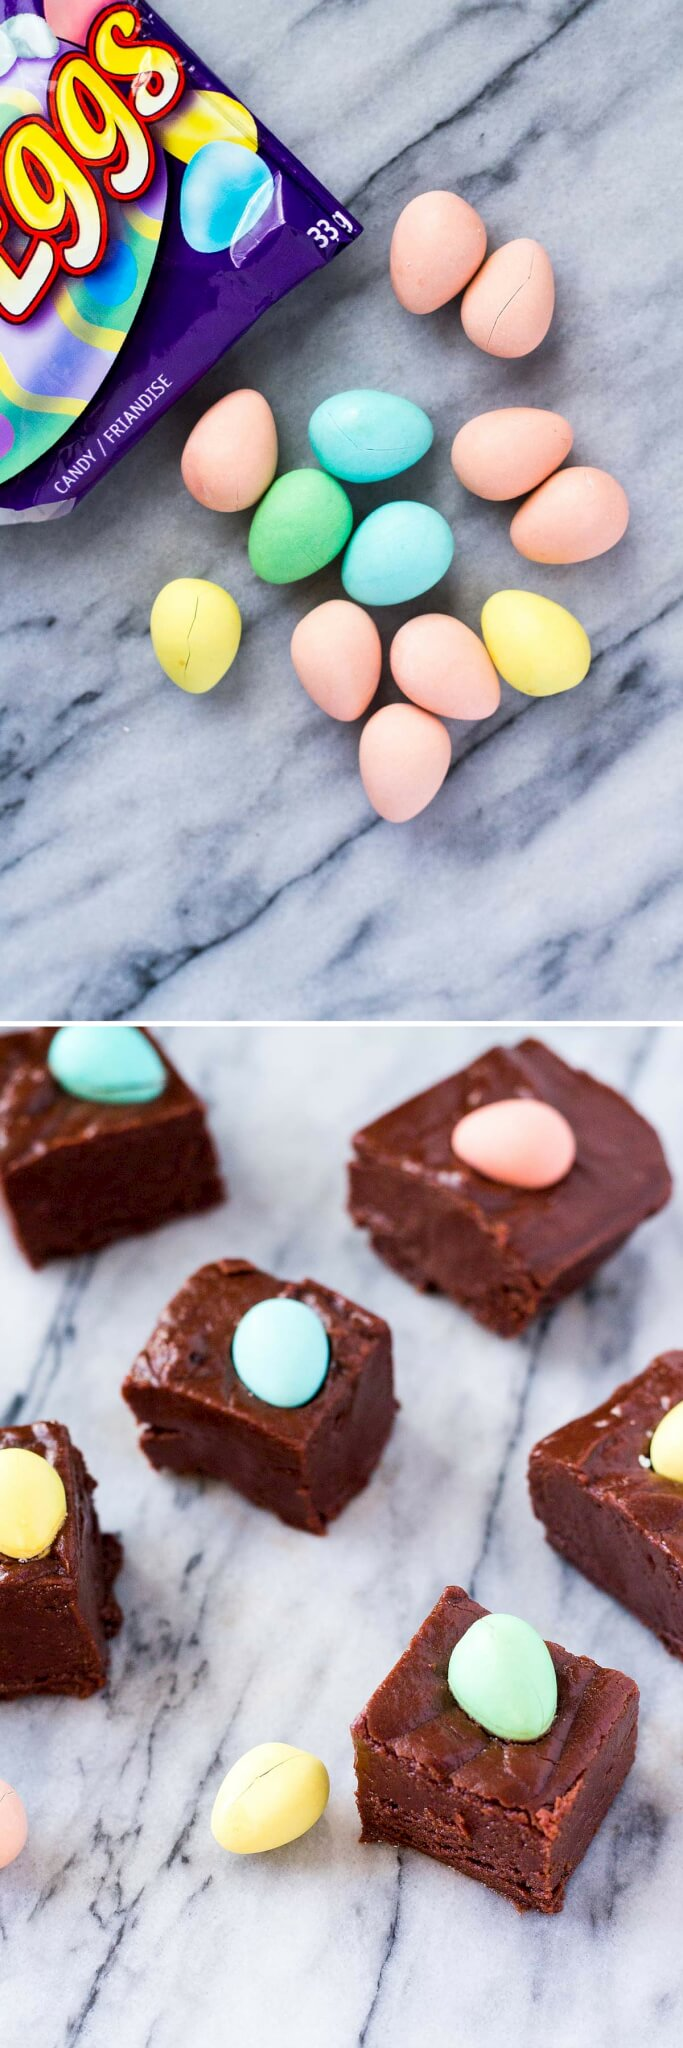 Creamy, smooth chocolate fudge that's super easy to make & perfect for Easter. You'll love that it only takes 10 minutes!